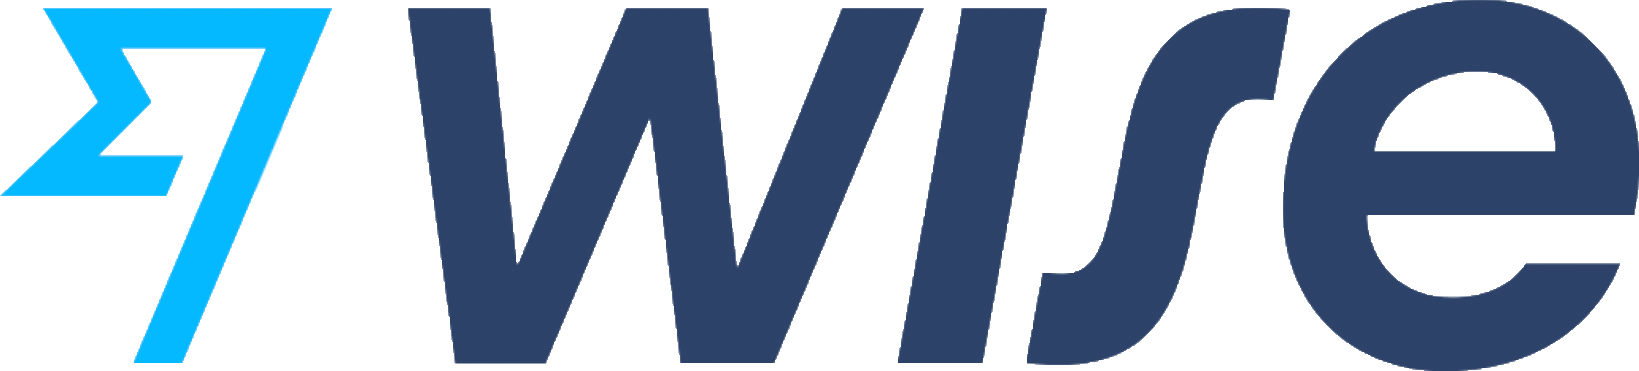 wise logo png